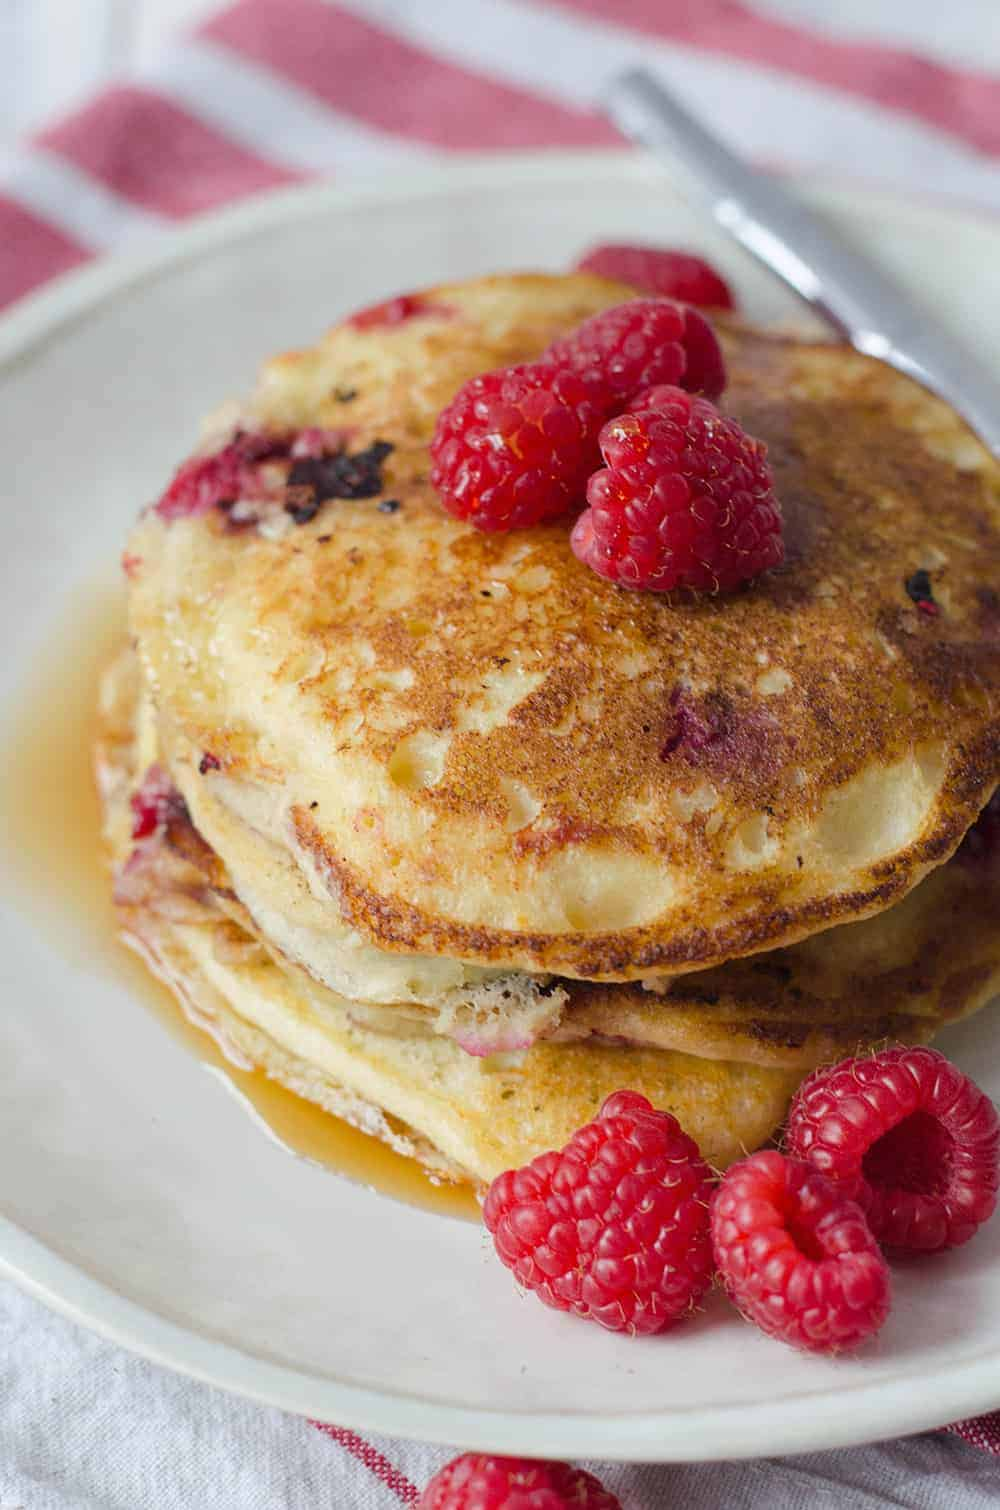 Lemon Raspberry Pancakes, perfect for Valentines Day brunch! Soft and fluffy pancakes infused with lemon zest and frozen raspberries. | www.delishknowledge.com